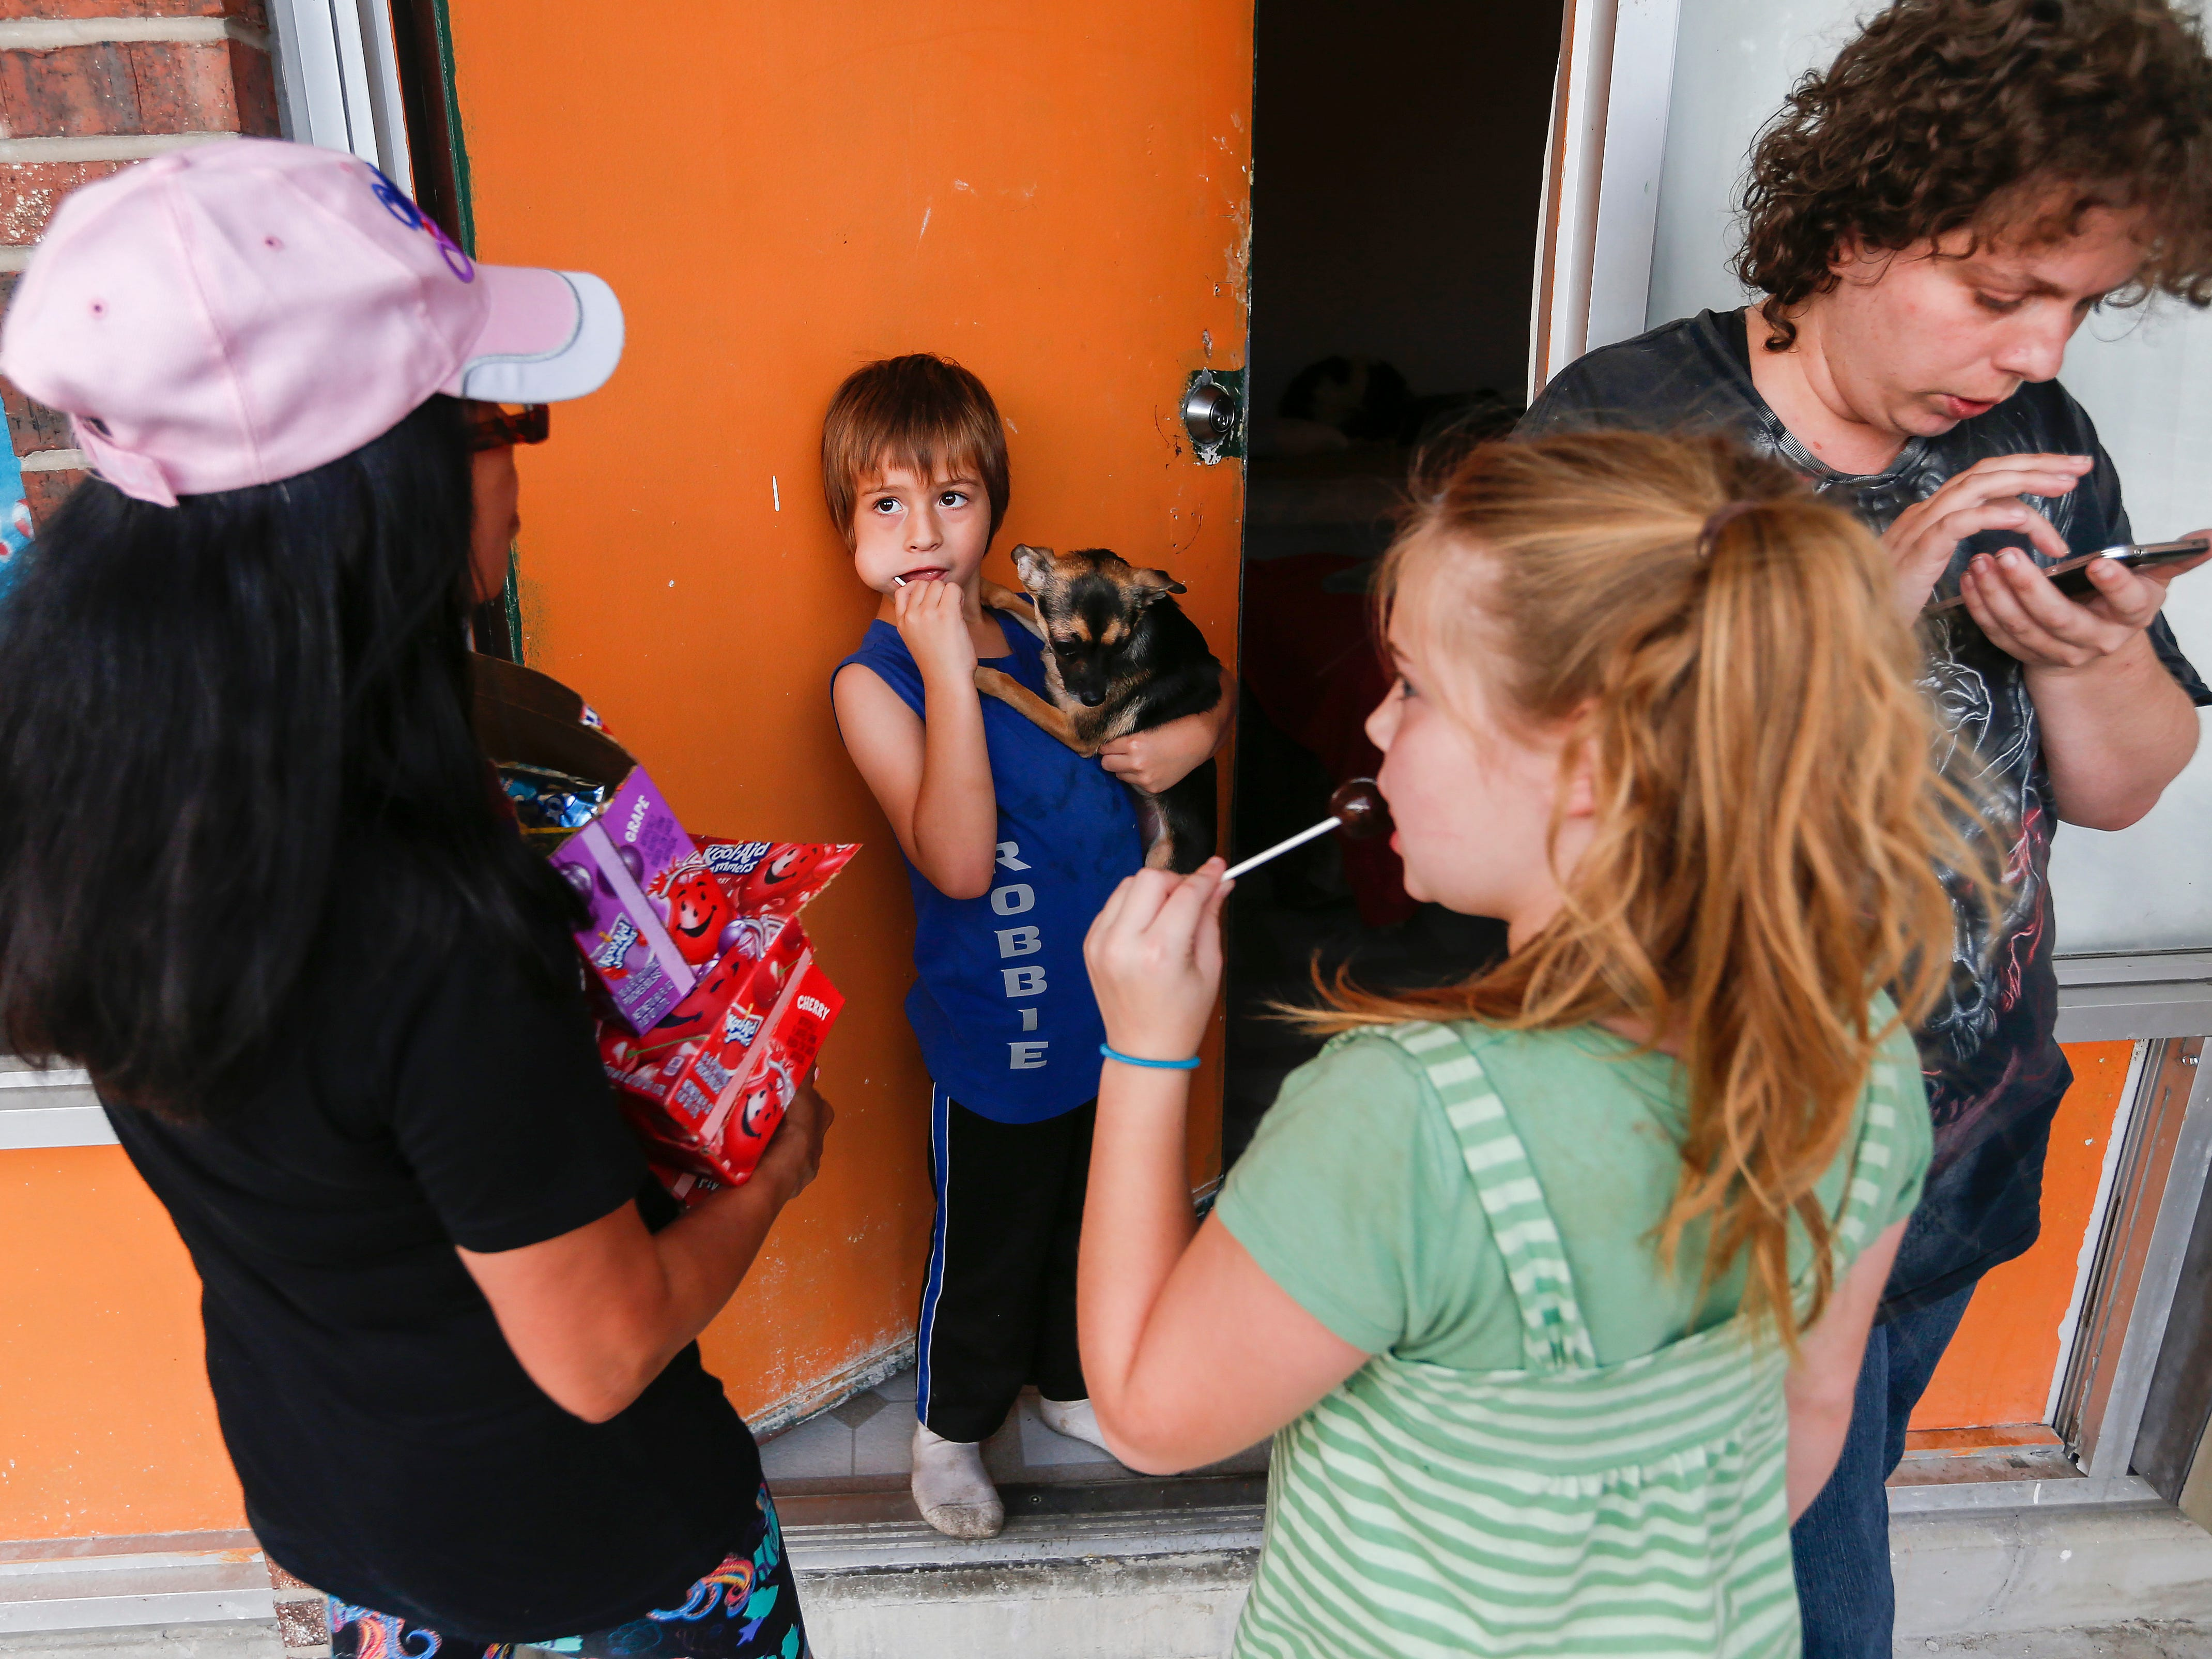 Estrella Wilson, left, a volunteer with Jesus Was Homeless, delivers meals to  Ally Brown, right, and her children Robby, center, and Rizlin at the Branson Plaza on Thursday, July 5, 2018. Jesus Was Homeless volunteers deliver meals to residents in Branson's extended stay hotels every Thursday.